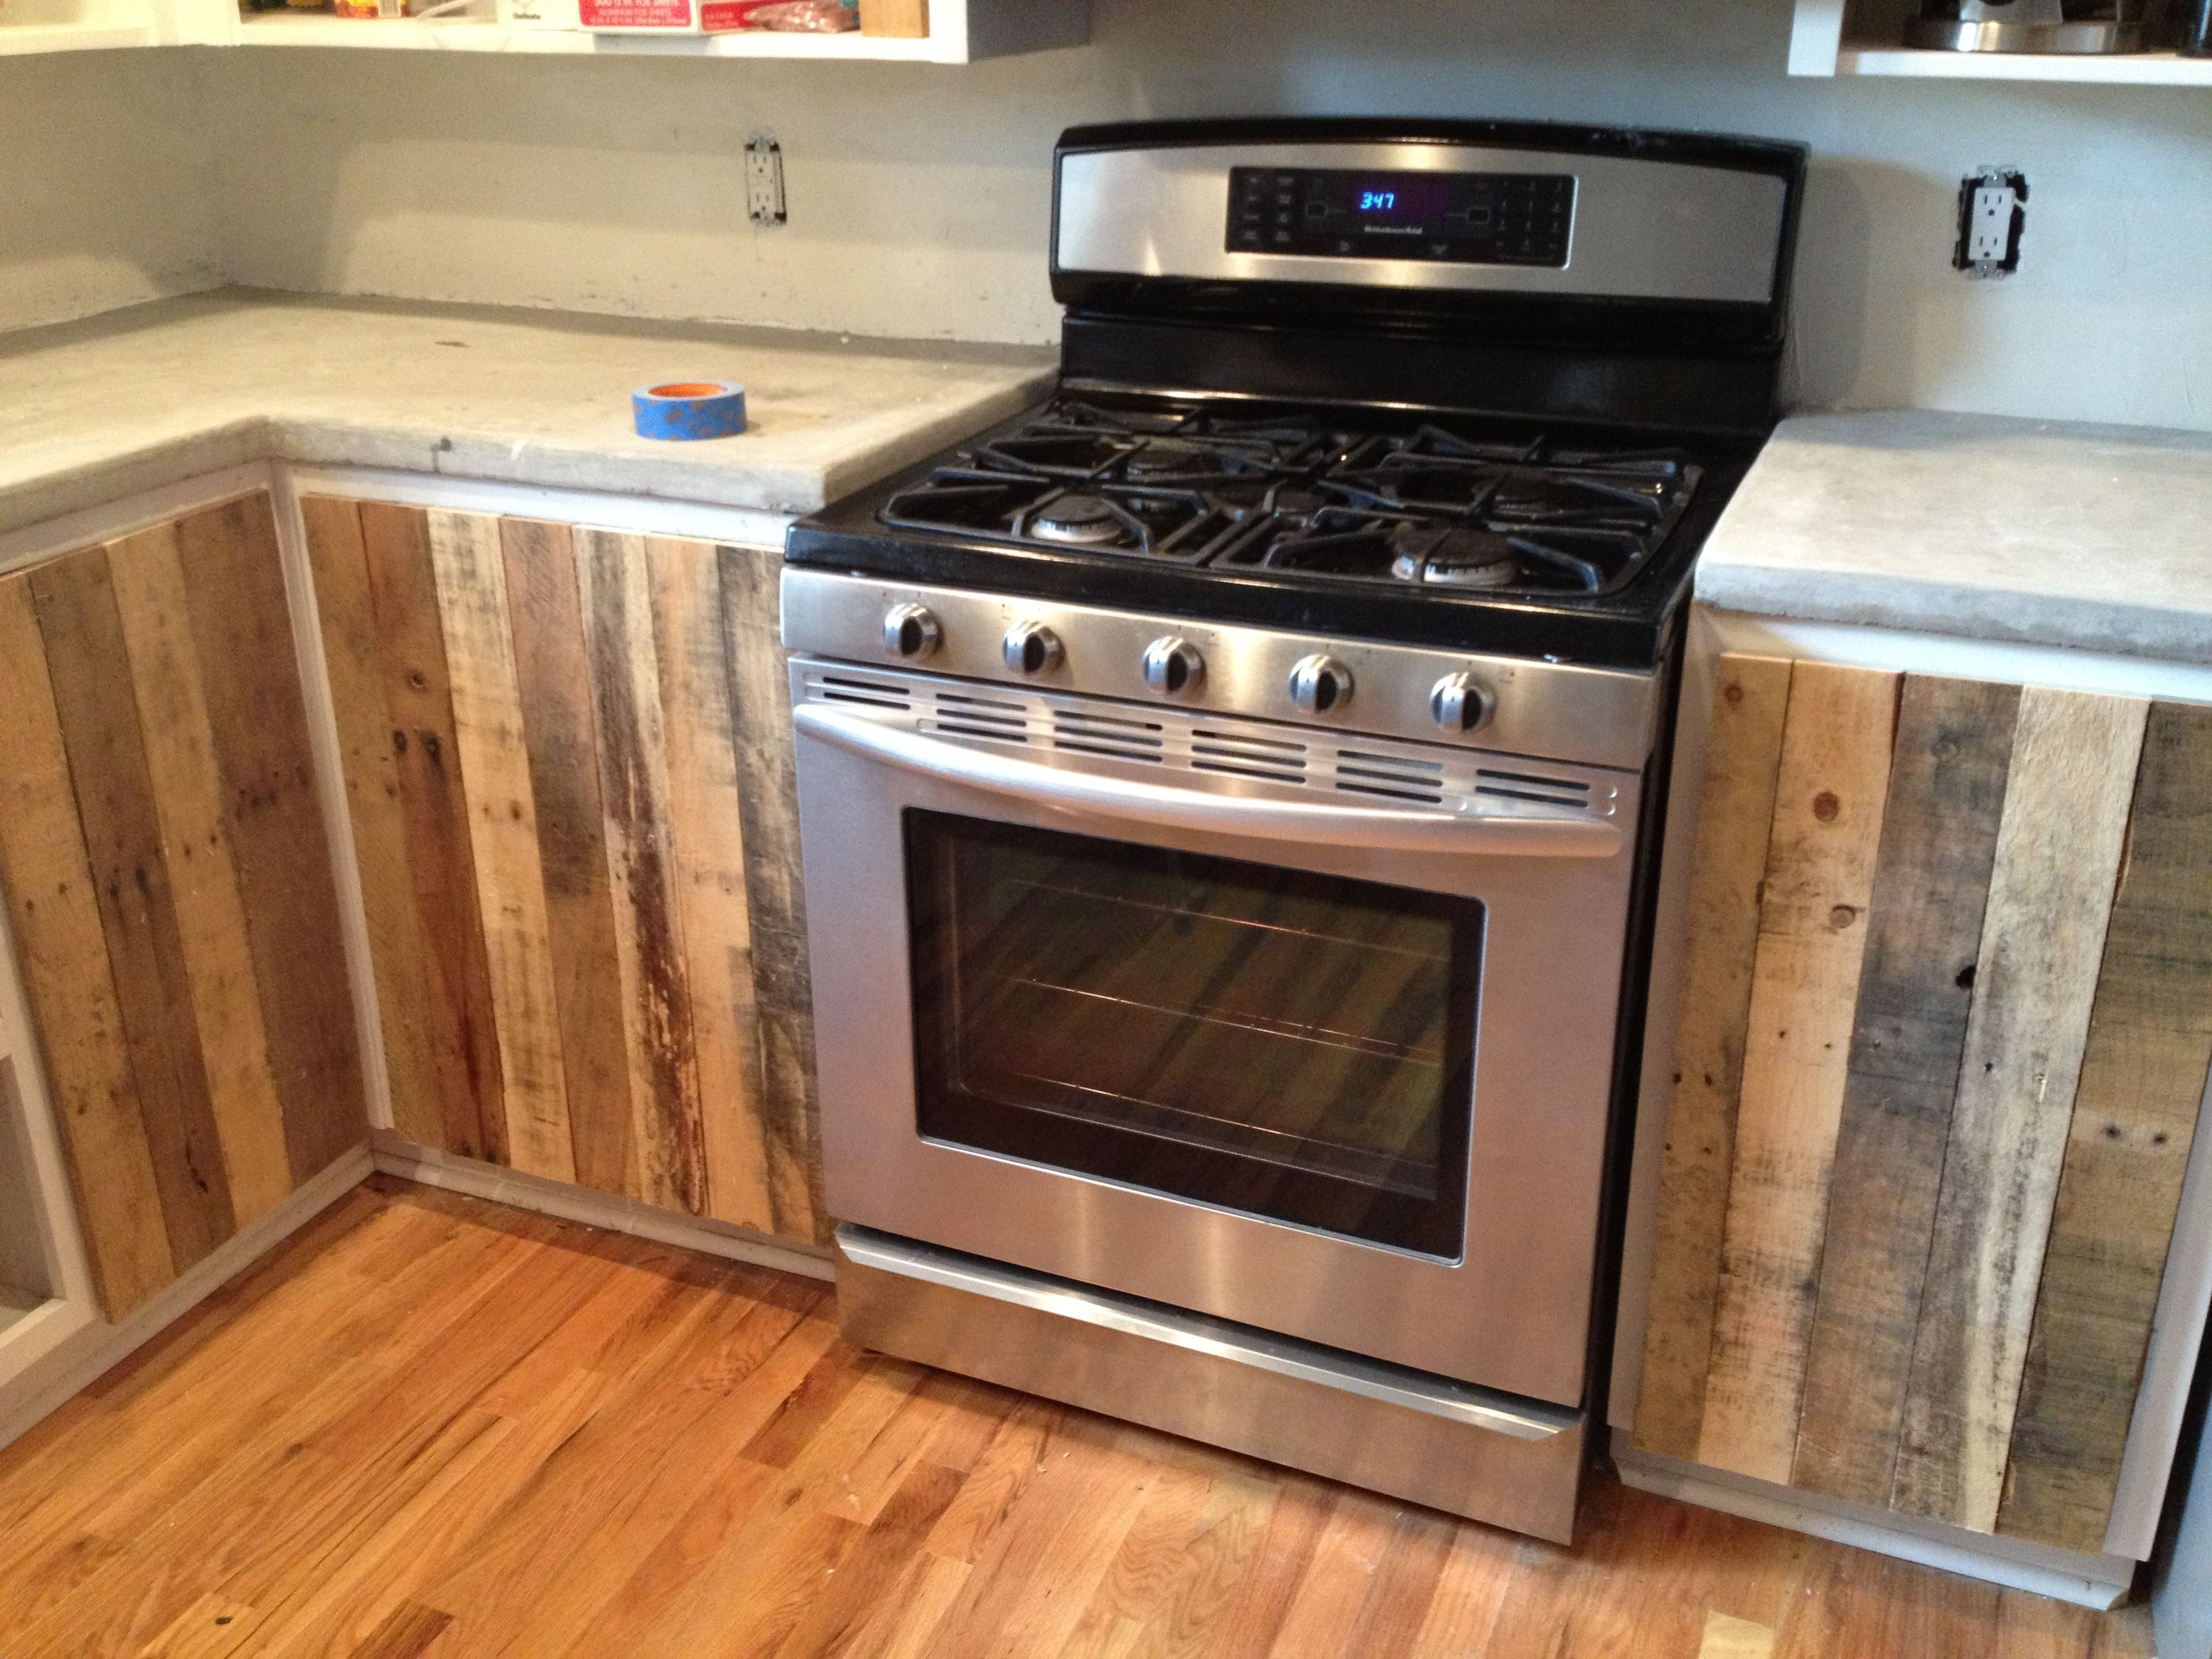 Wooden Pallet Kitchen Cabinets Diy Kitchen Cabinets Diy Furniture Made From Pallets Rustic Kitchen Cabinets